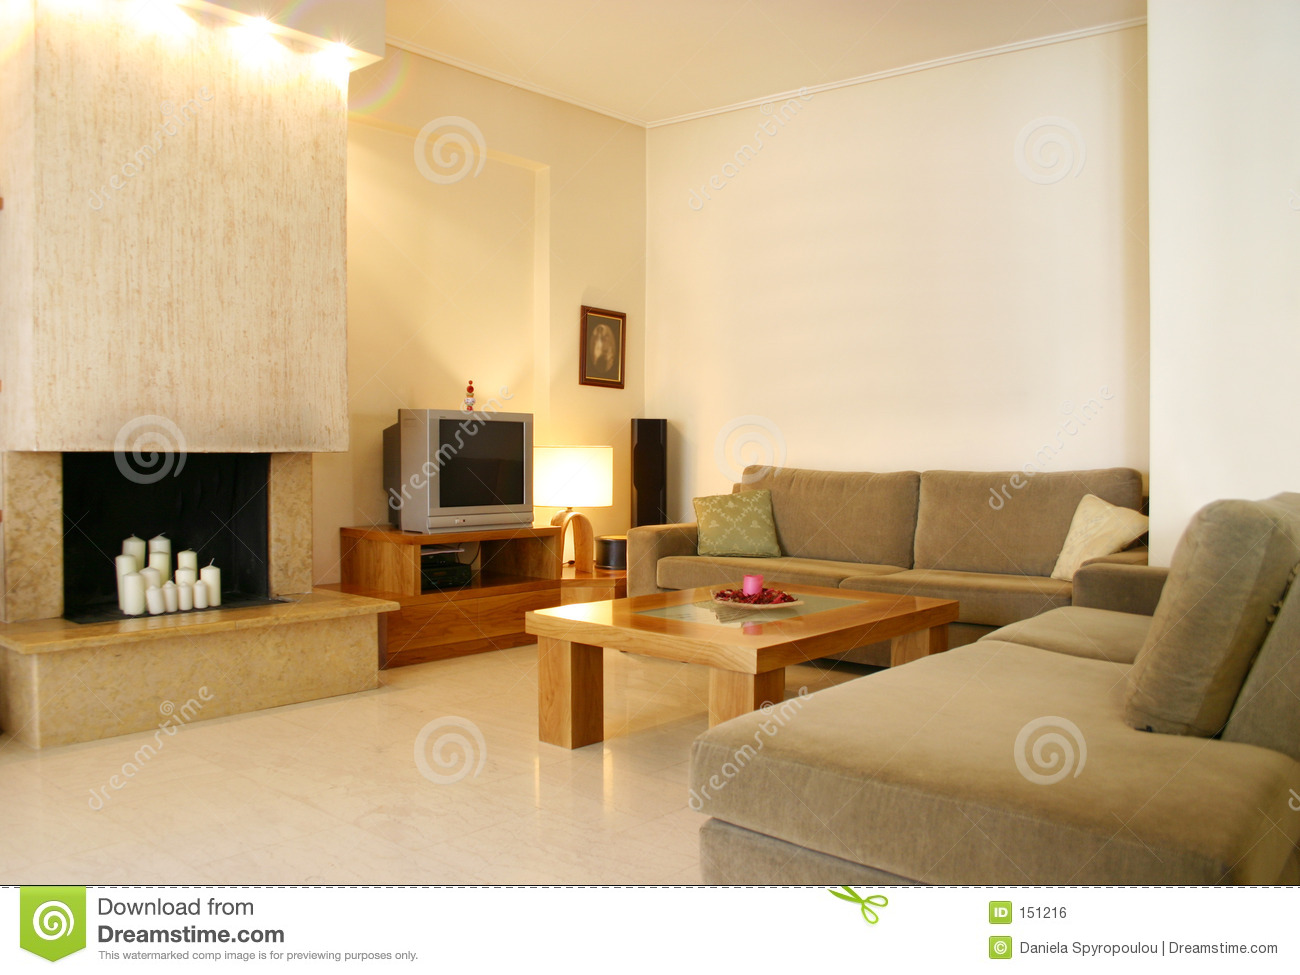 Home interior design. Home Interior Design Royalty Free Stock Image   Image  151216